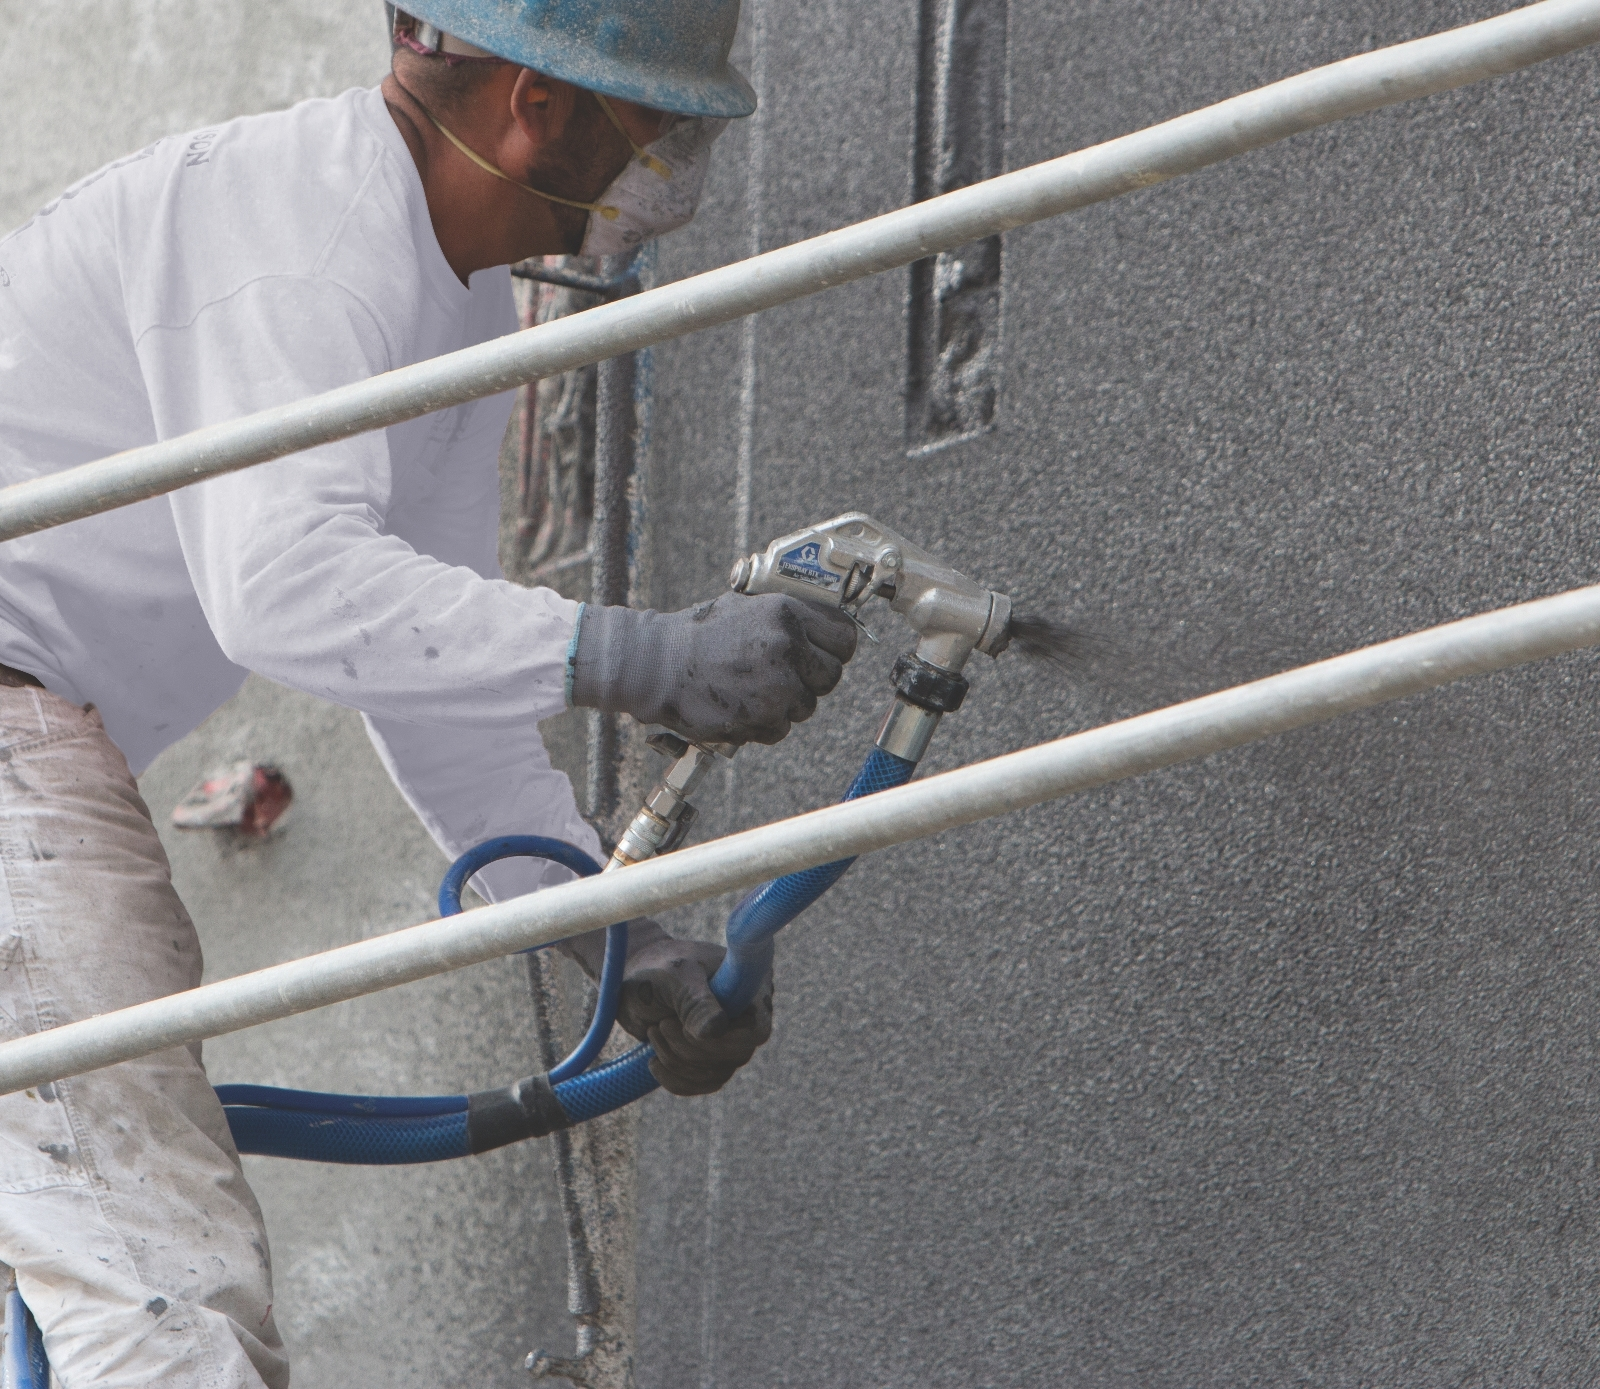 Stucco And Eifs Contractor In Alabama: Solutions For Spraying Stucco/EIFS